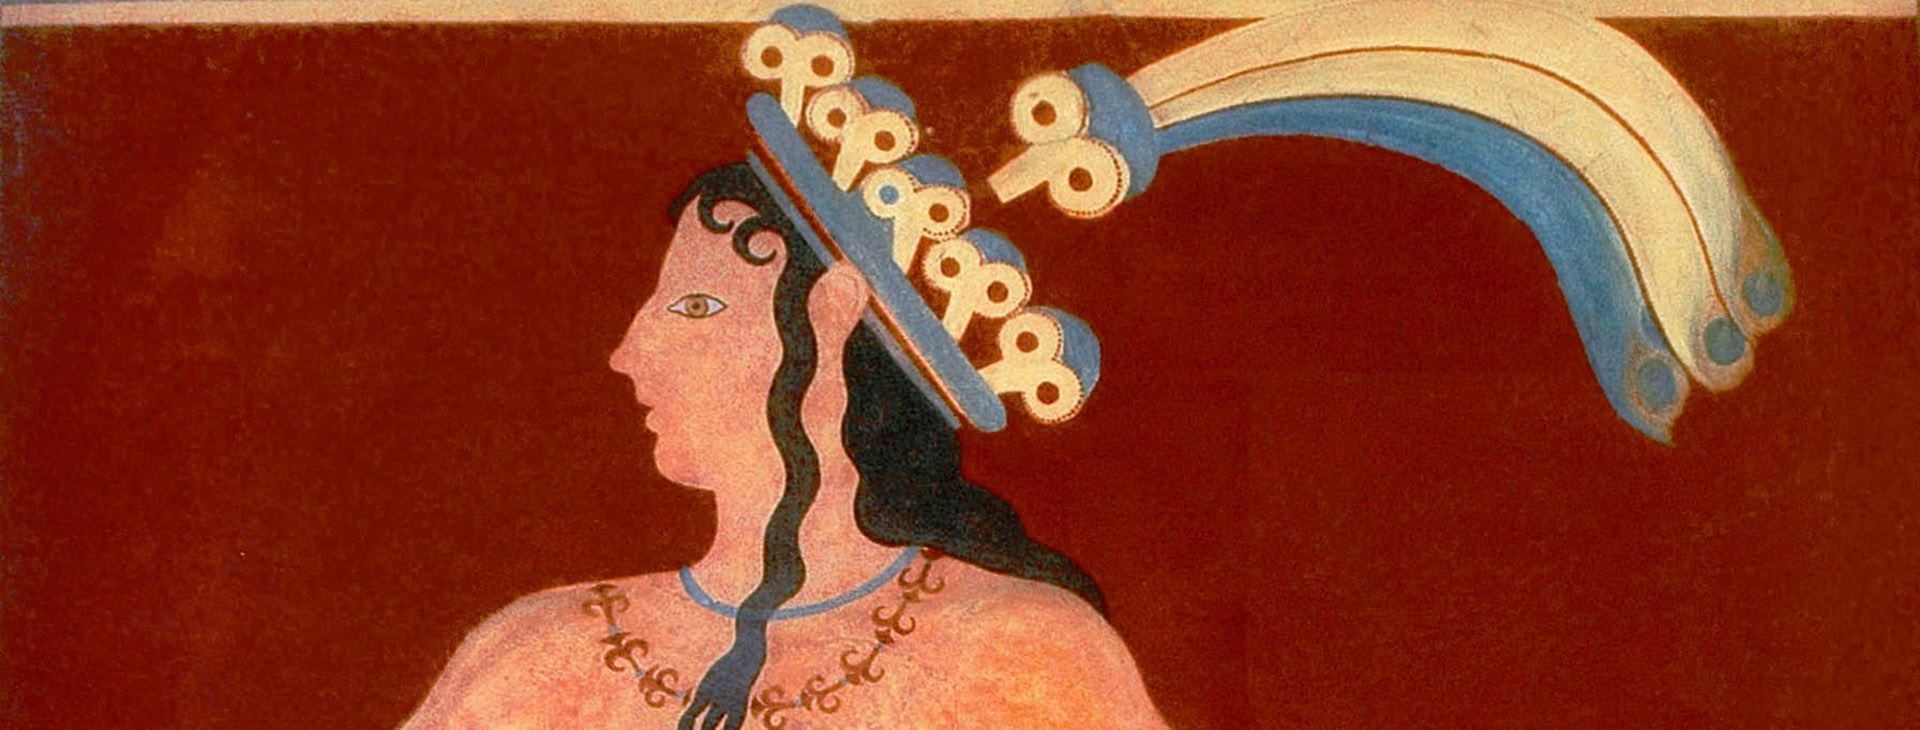 Prince of lillies, fresco at the Minoan palace of Knossos, Heraklion